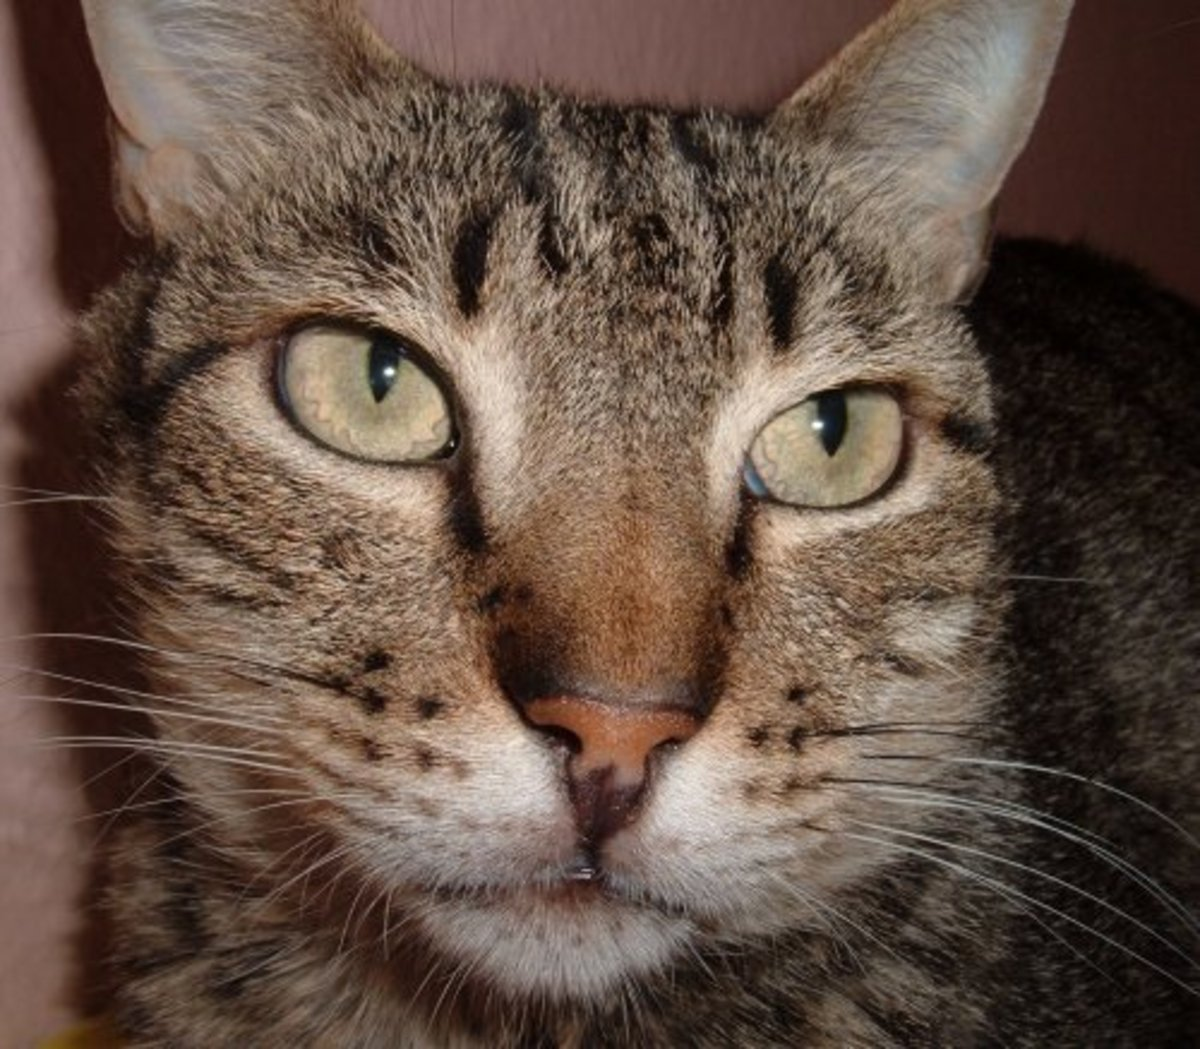 Can't you just see the wisdom in those eyes! Ely's cat definitely has it going on.